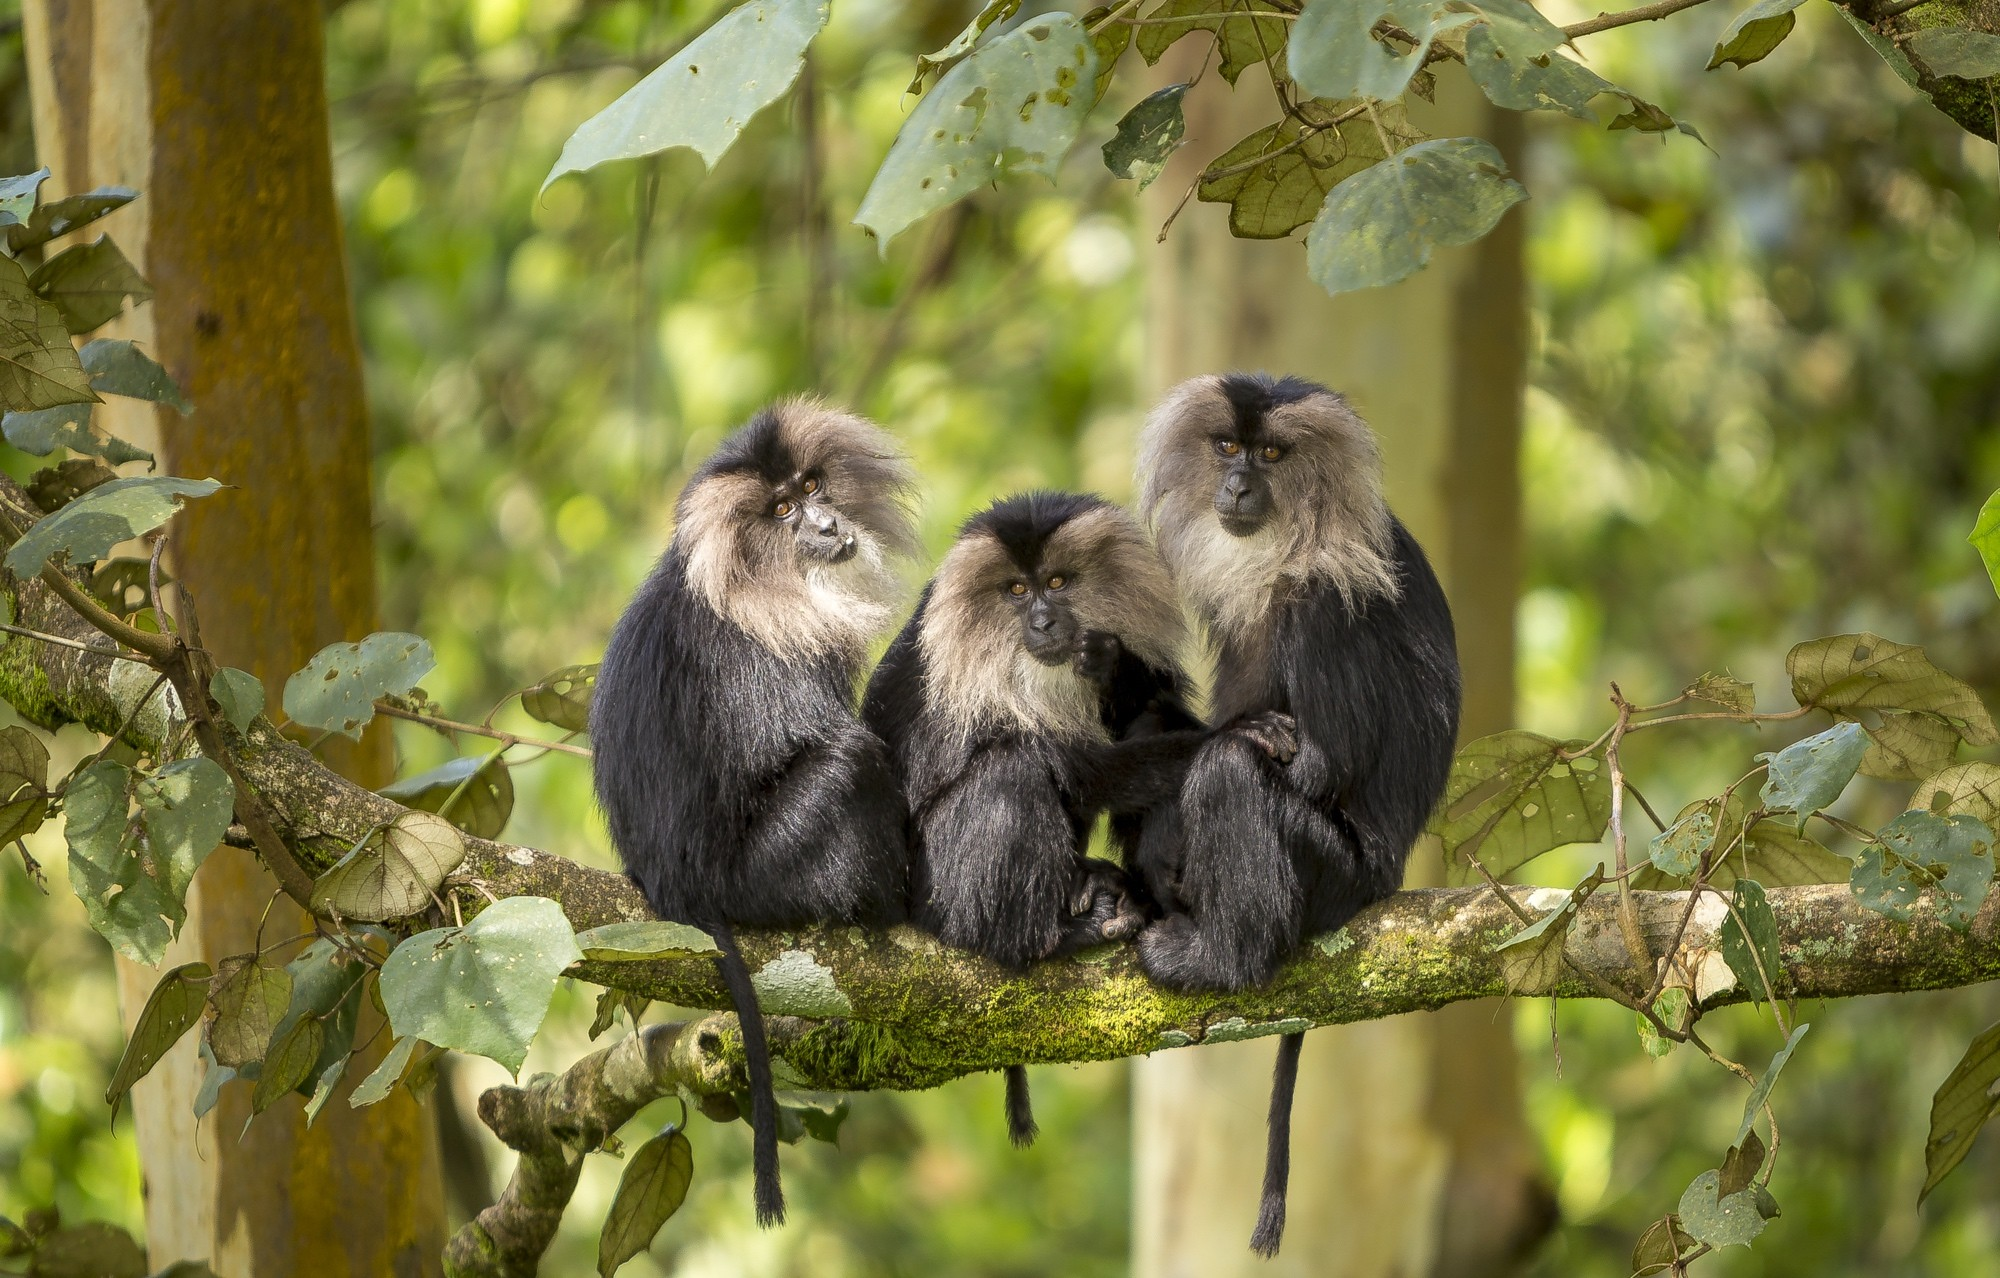 The lion-tailed macaque served as the face of the 'Save Silent Valley' movement in 1973, when a hydro-electric project across the Kunthipuzha River threatened to submerge vast swathes of virgin rainforest. Photo: Anuroop Krishnan